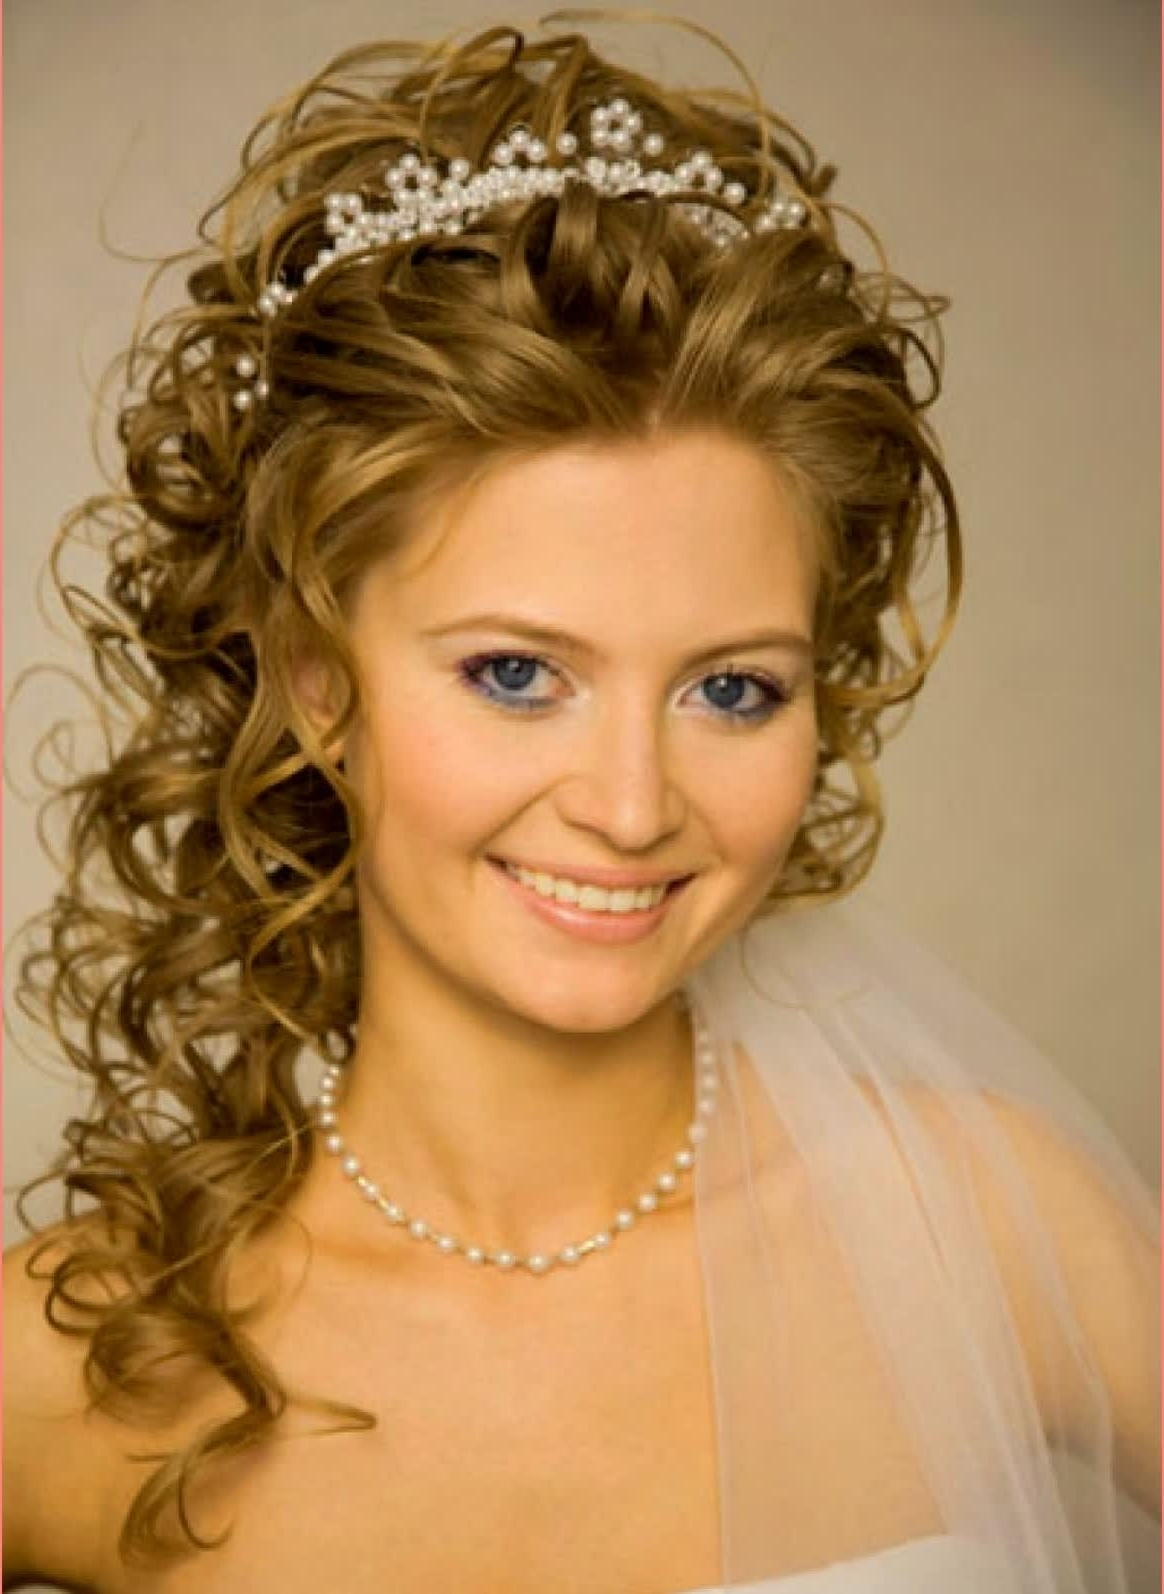 Awesome Hairstyles Wedding Hairstyles Long Hair With Veils And Intended For Recent Wedding Hairstyles For Long Hair With Tiara (View 1 of 15)